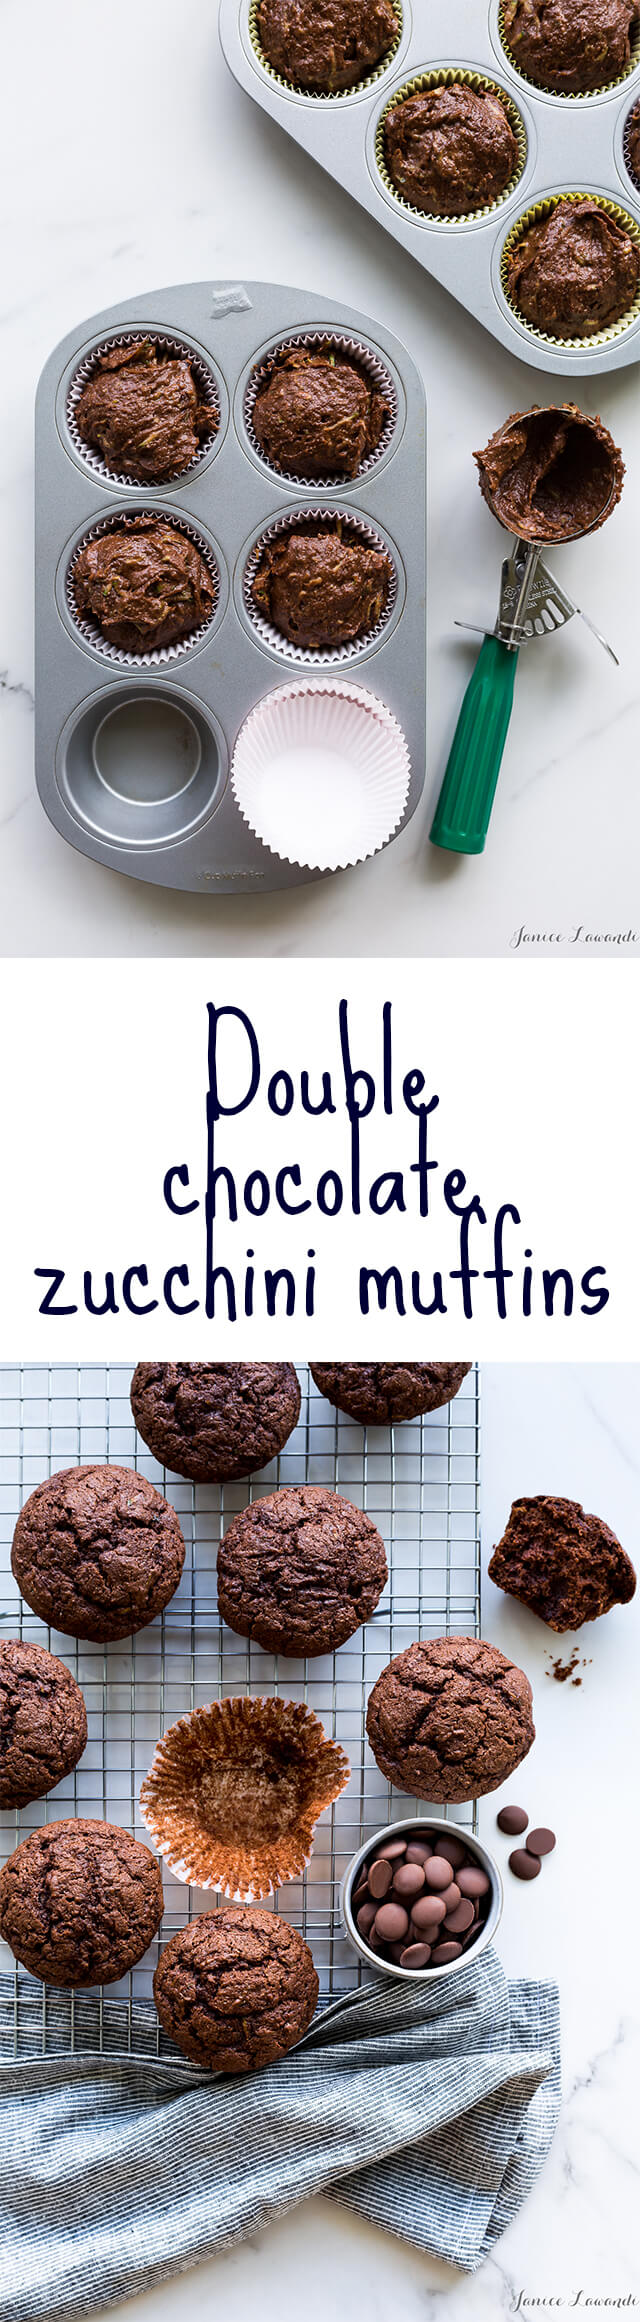 Double chocolate zucchini muffins made with whole wheat flour, lots of cinnamon, and Cacao Barry chocolate for the perfect back-to-school snack